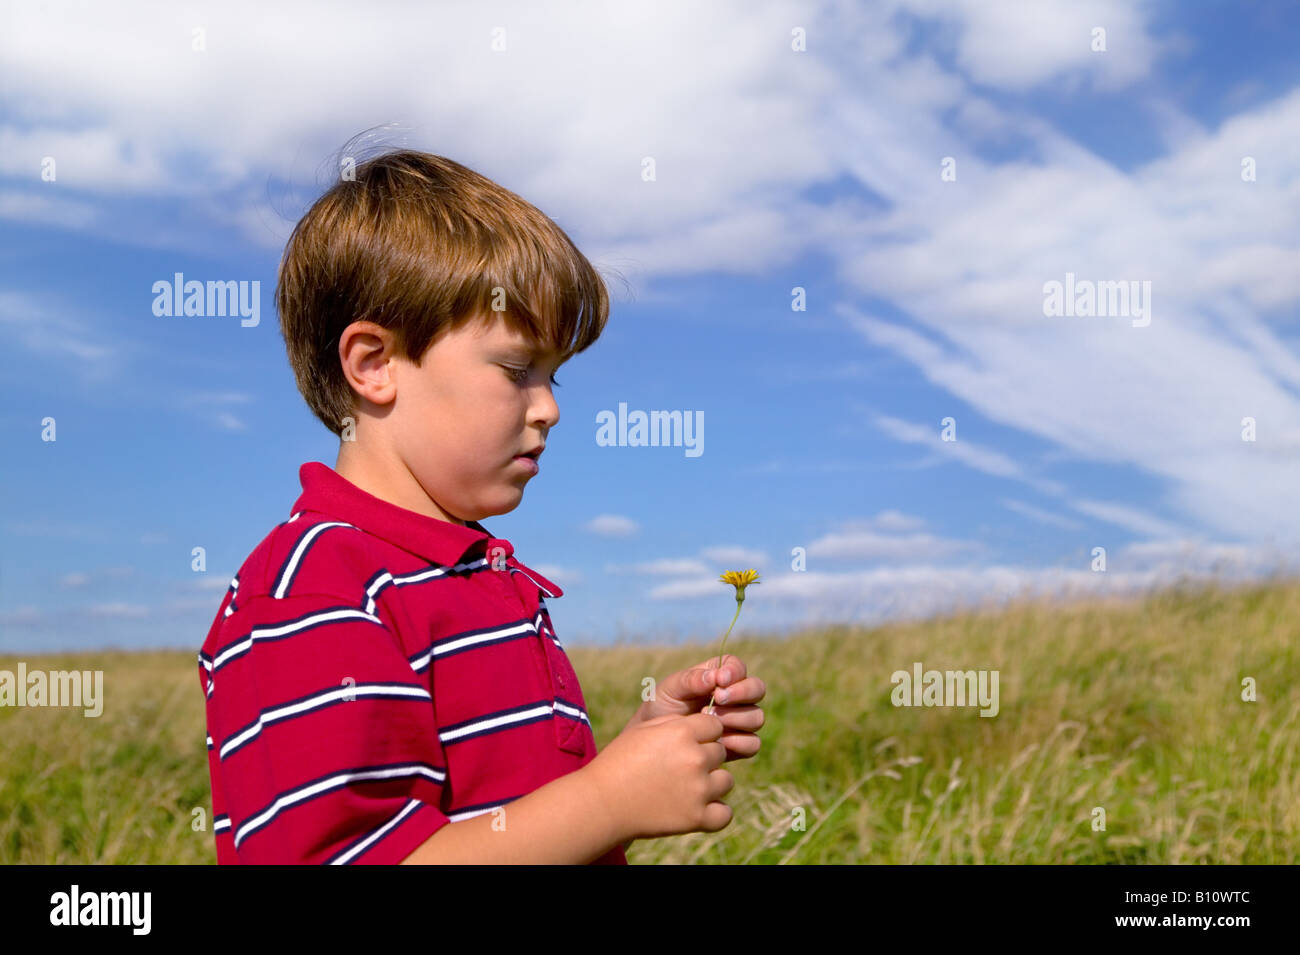 A young boy in a red shirt looking at a flower he s picked in a meadow on a bright sunny day - Stock Image